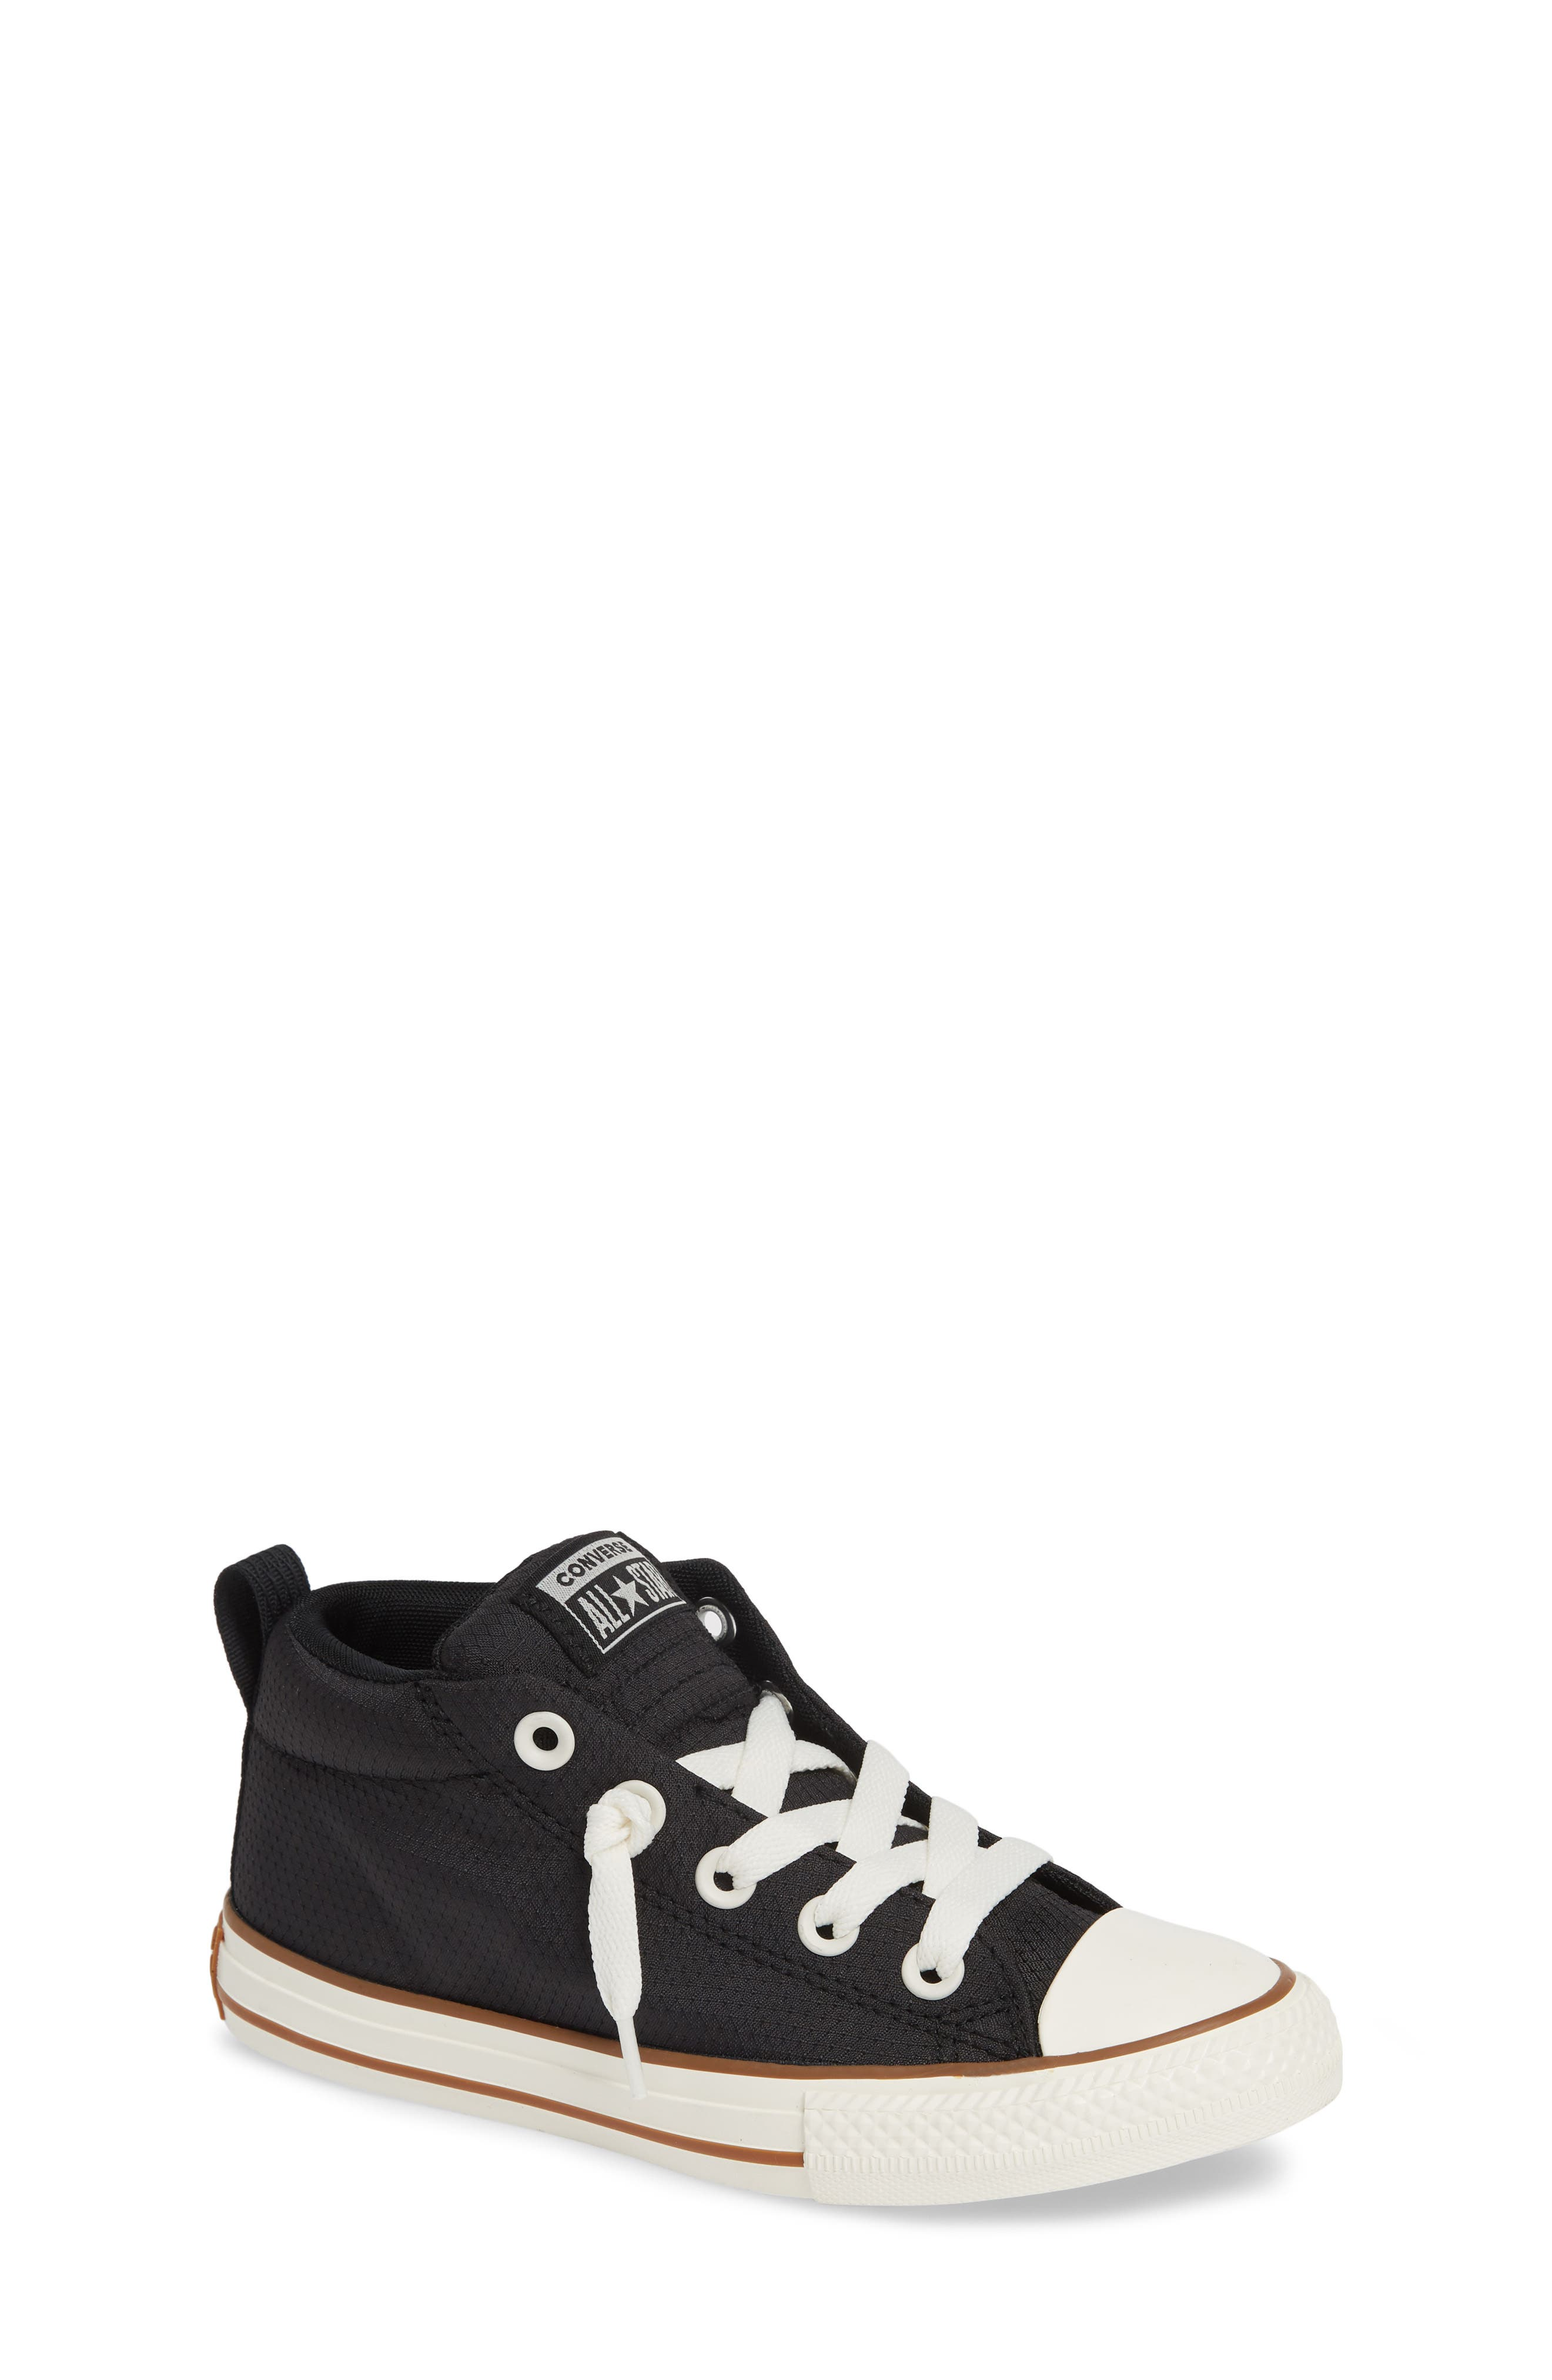 Chuck Taylor<sup>®</sup> All Star<sup>®</sup> Street Mid Top Sneaker,                             Main thumbnail 1, color,                             BLACK/ GUM/ EGRET